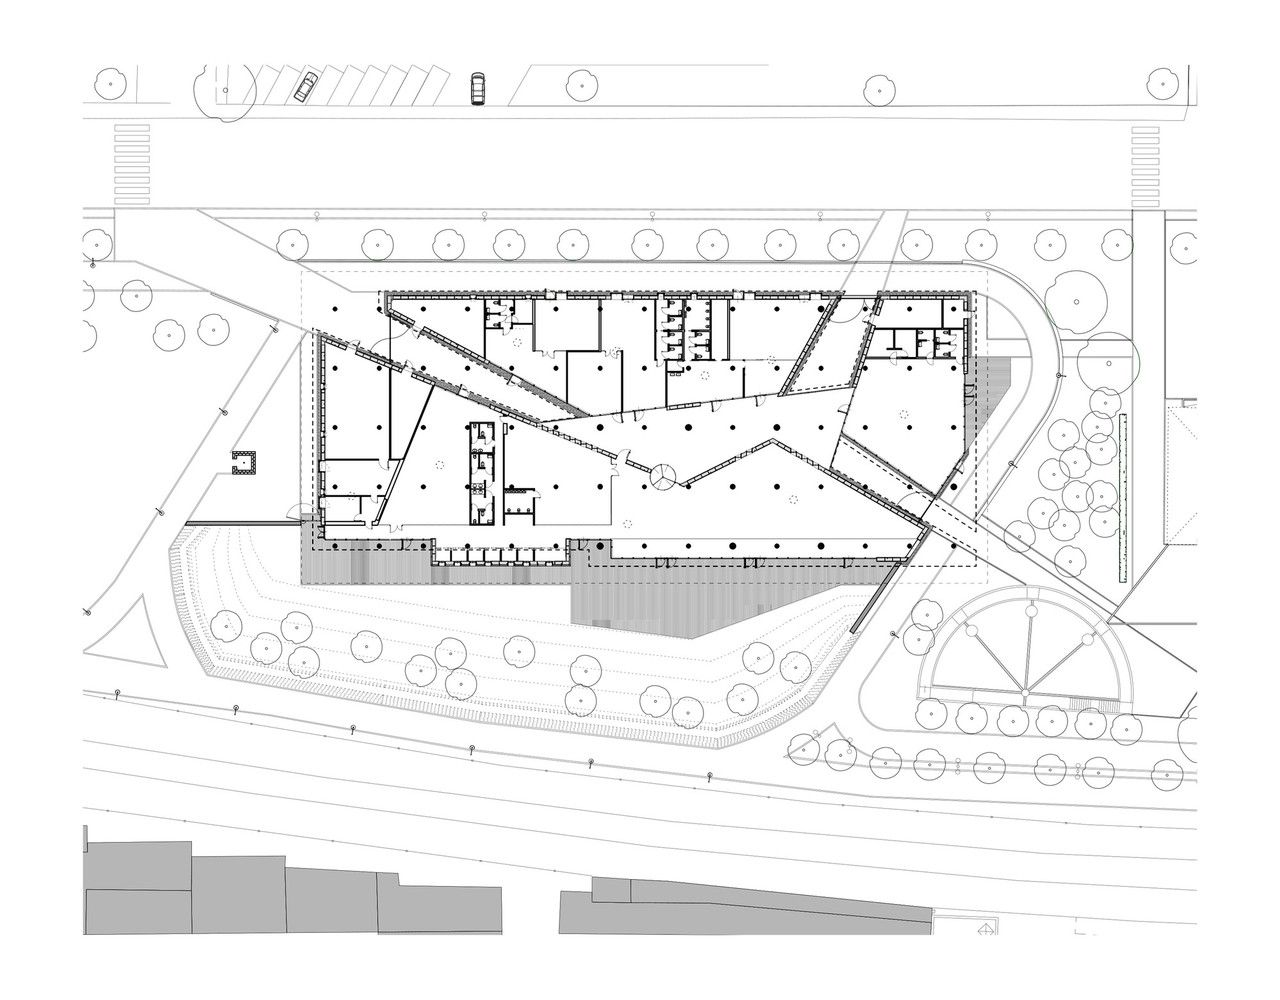 Gallery of Cultural Centers: 50 Examples in Plan and Section – 55